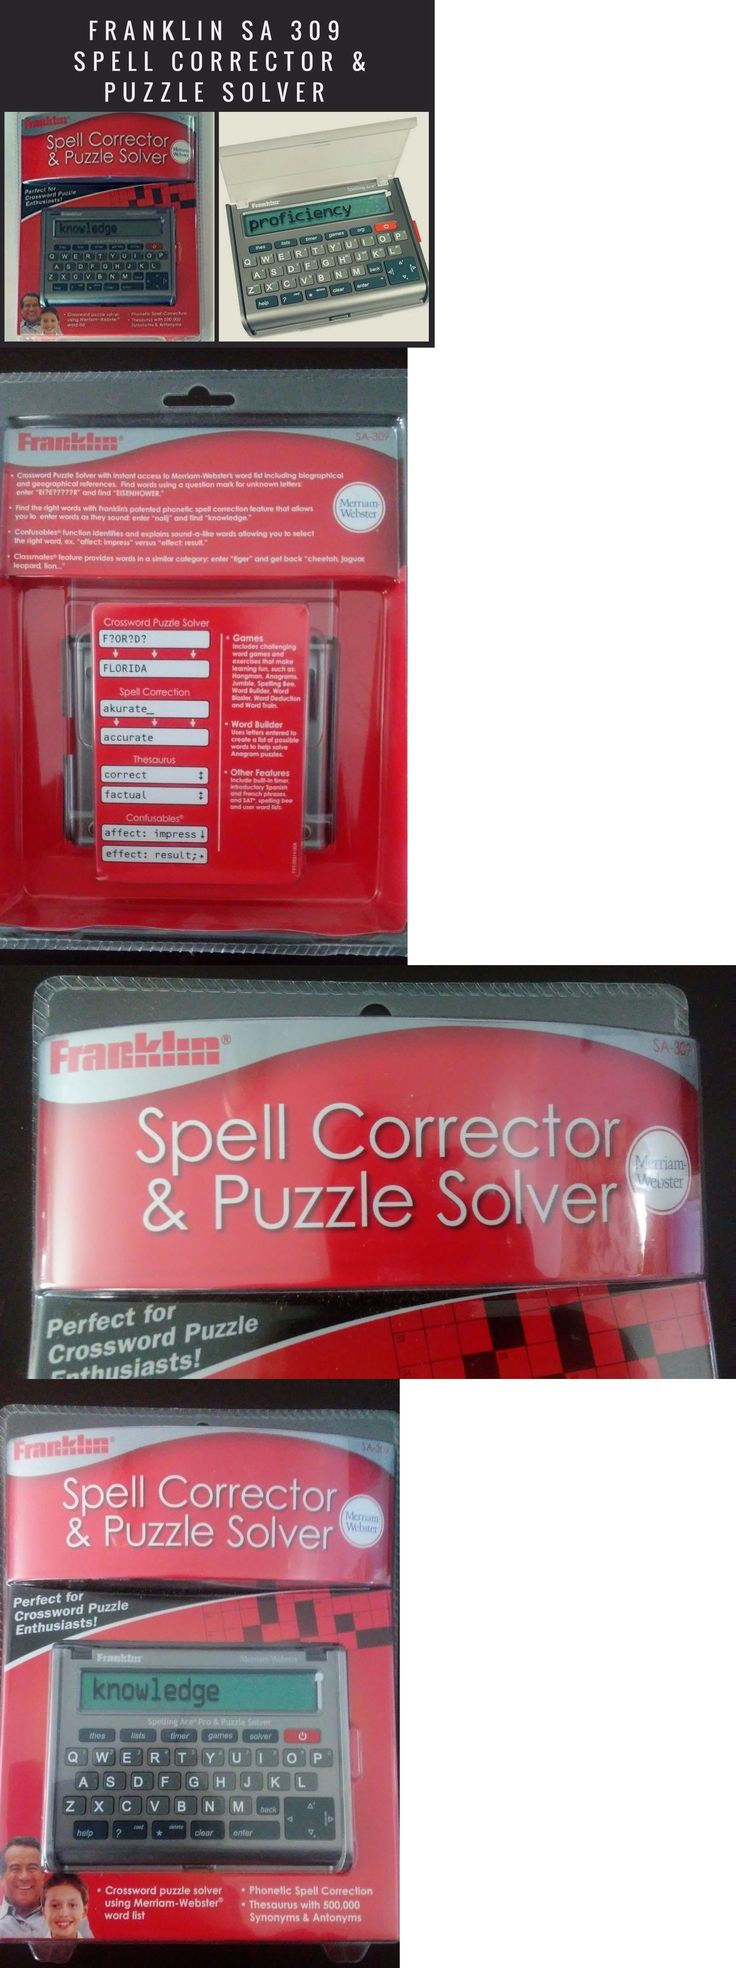 Dictionaries and Translators: New Sealed Franklin Merriam Webster Spell Corrector And Puzzle Solver Sa-309 -> BUY IT NOW ONLY: $64.95 on eBay!